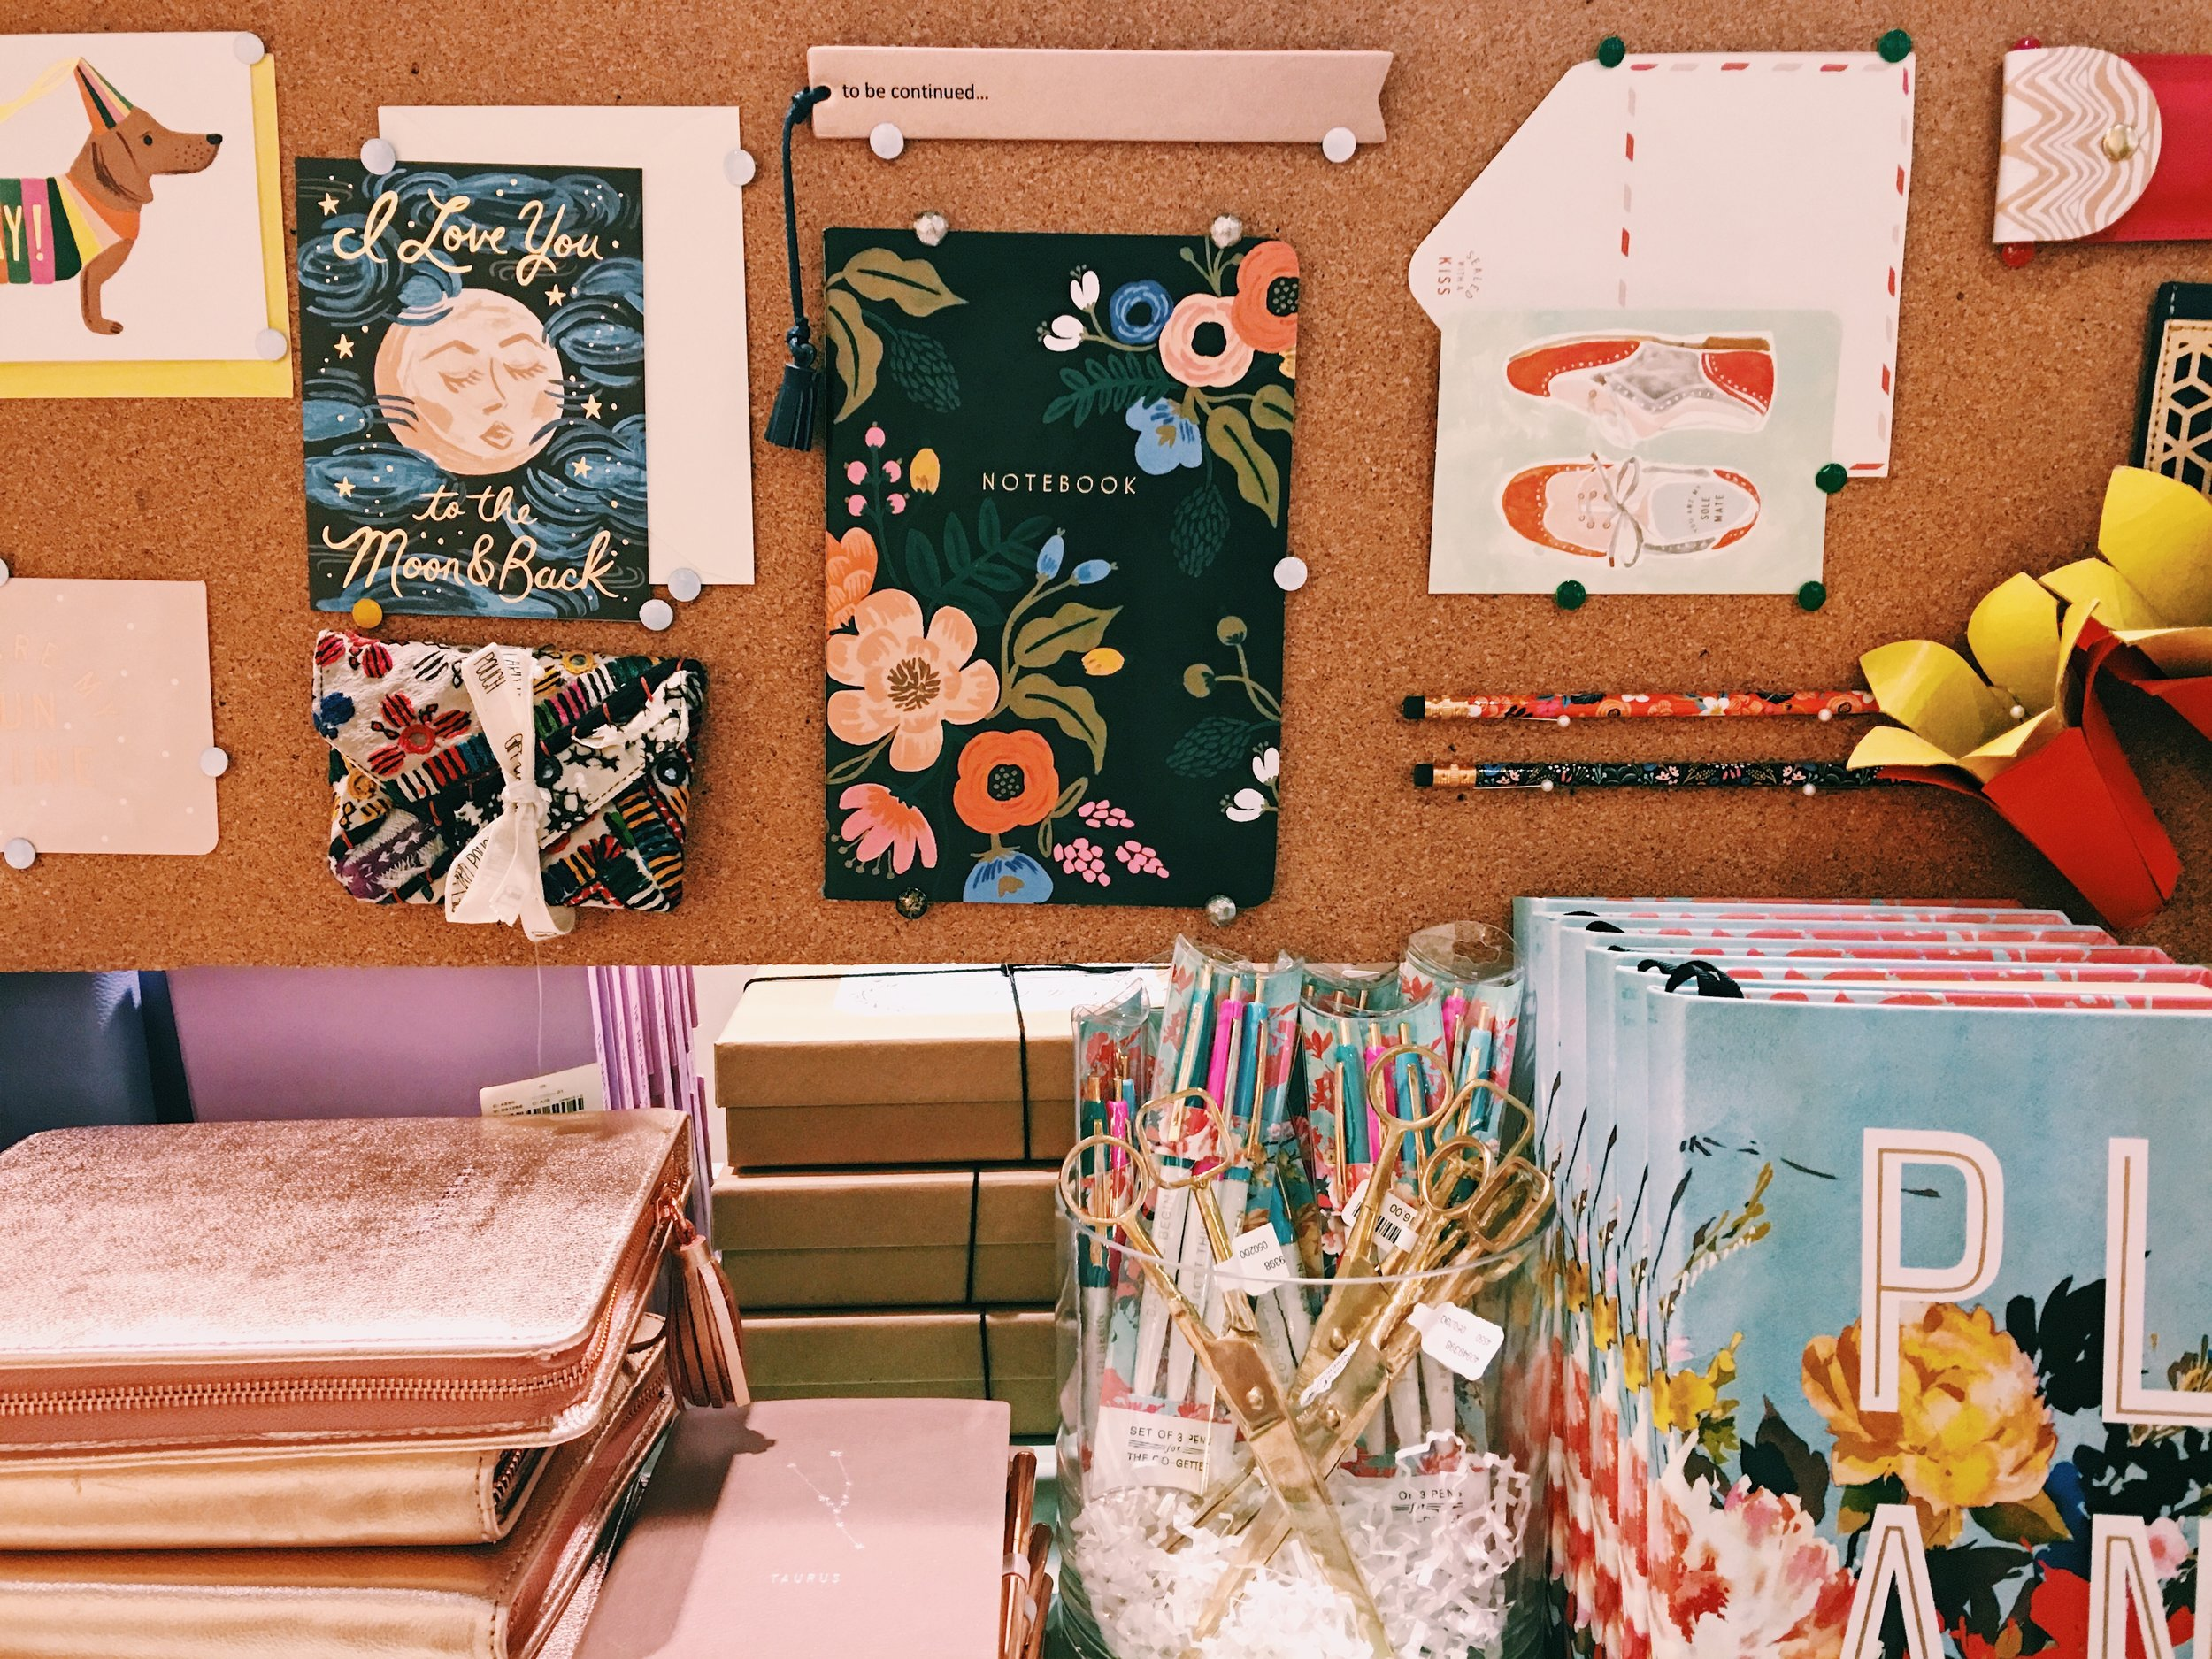 Anthropologie home office decor display